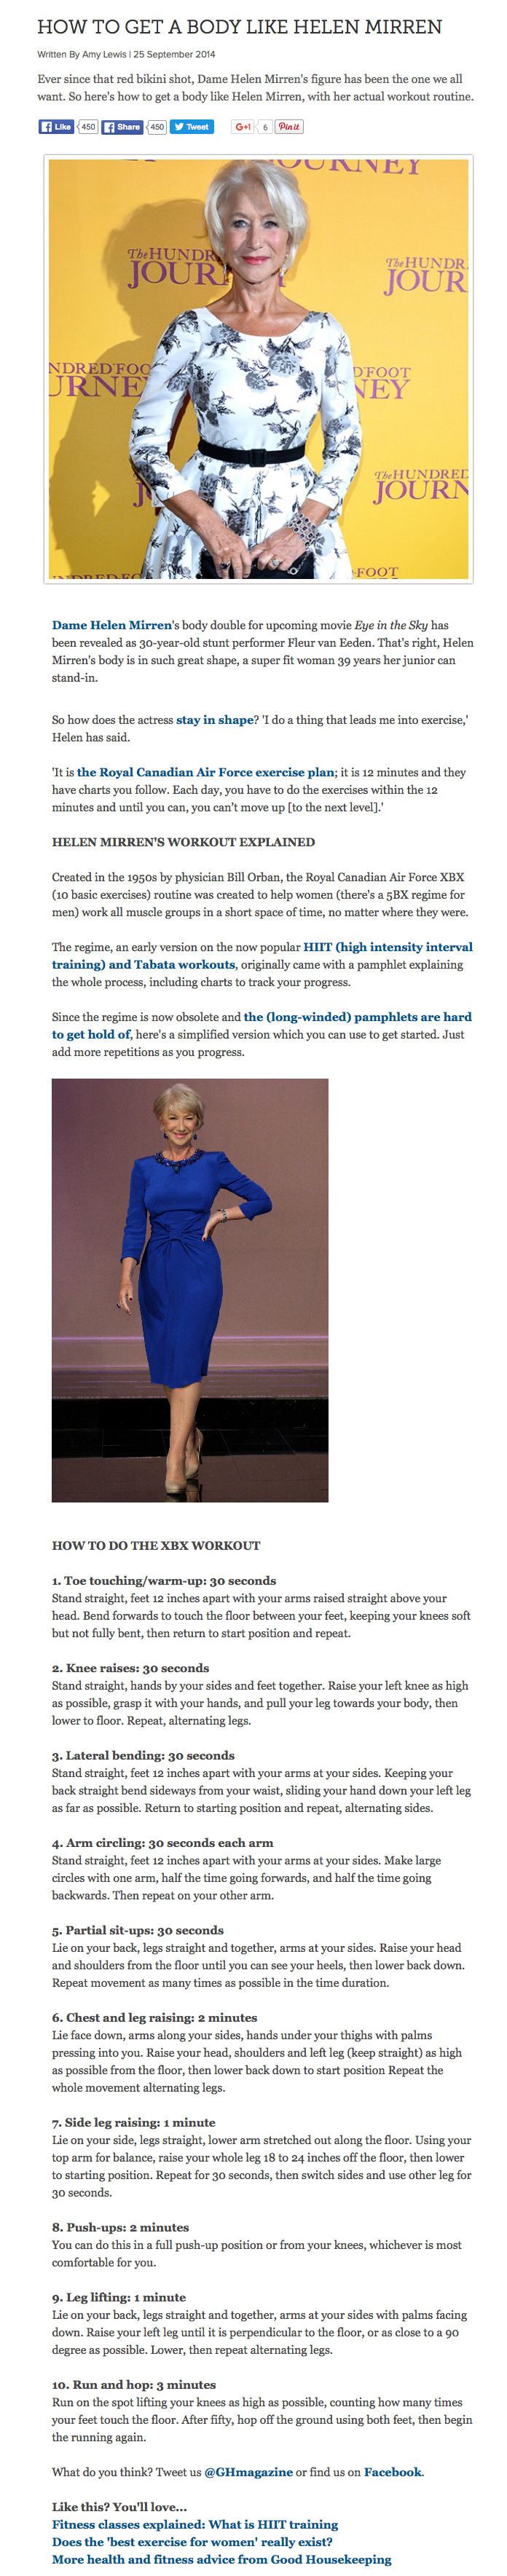 How to get a body like Helen Mirren